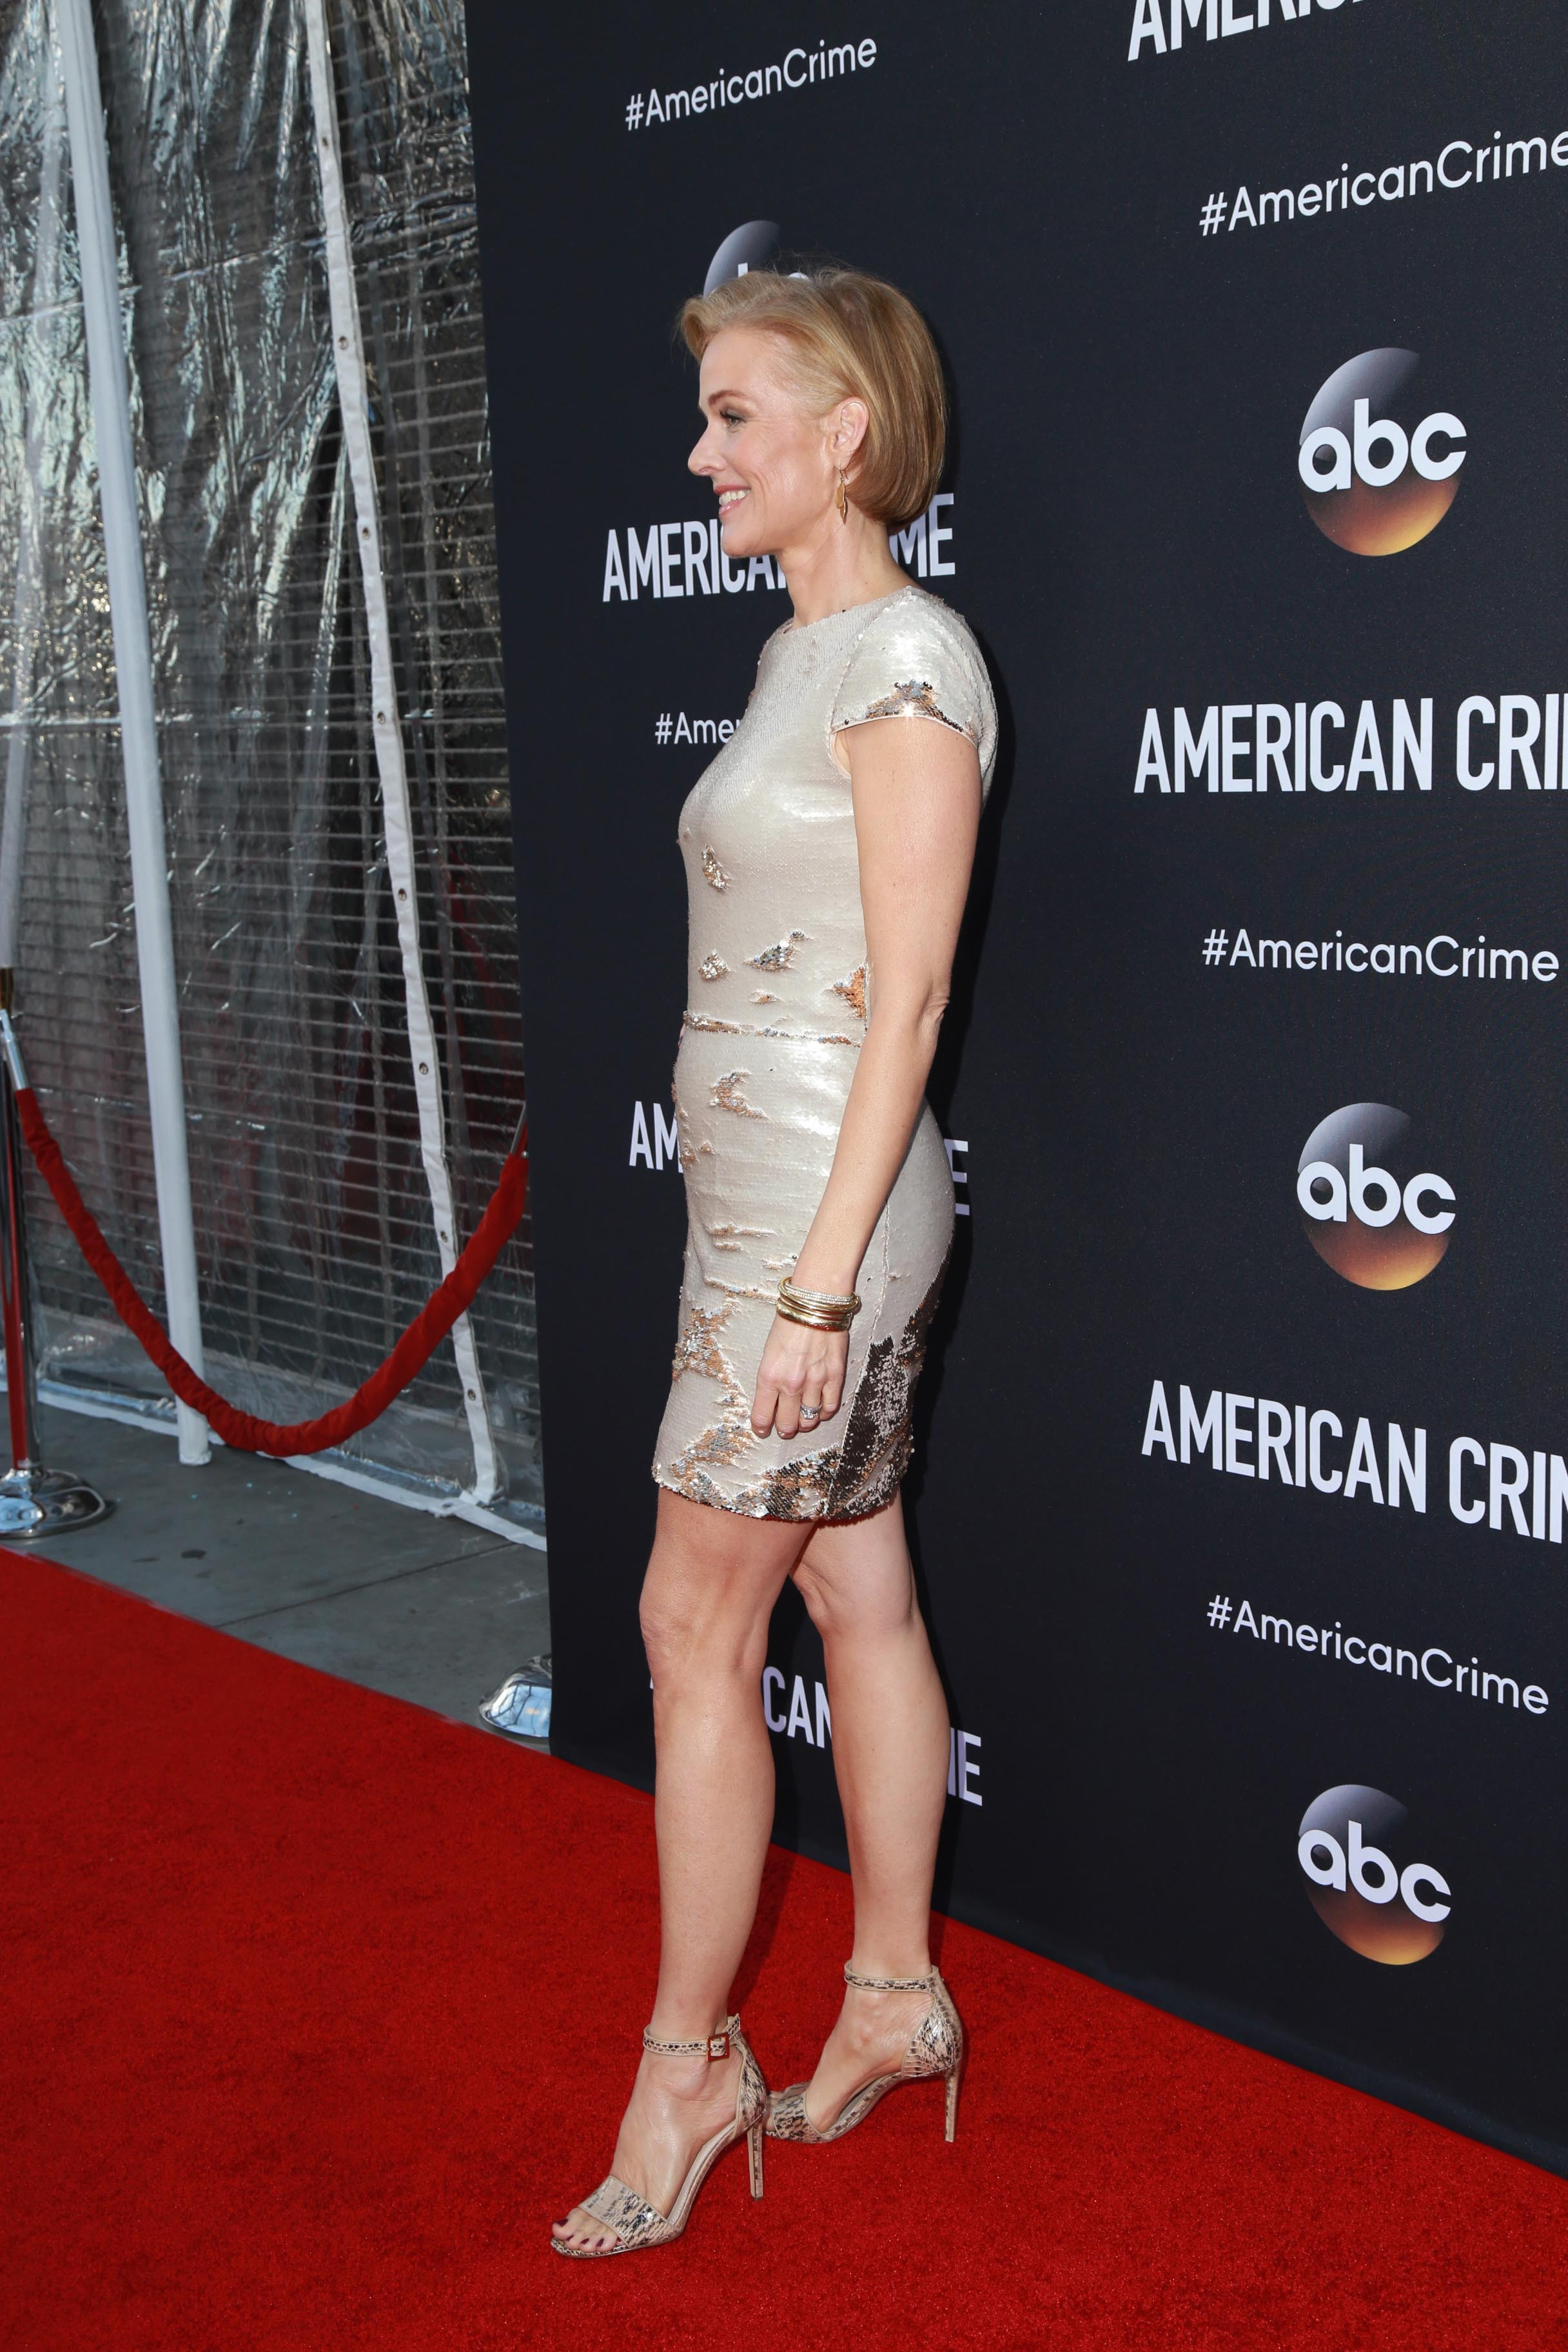 Penelope Ann Miller nudes (98 photo), Pussy, Paparazzi, Boobs, butt 2019